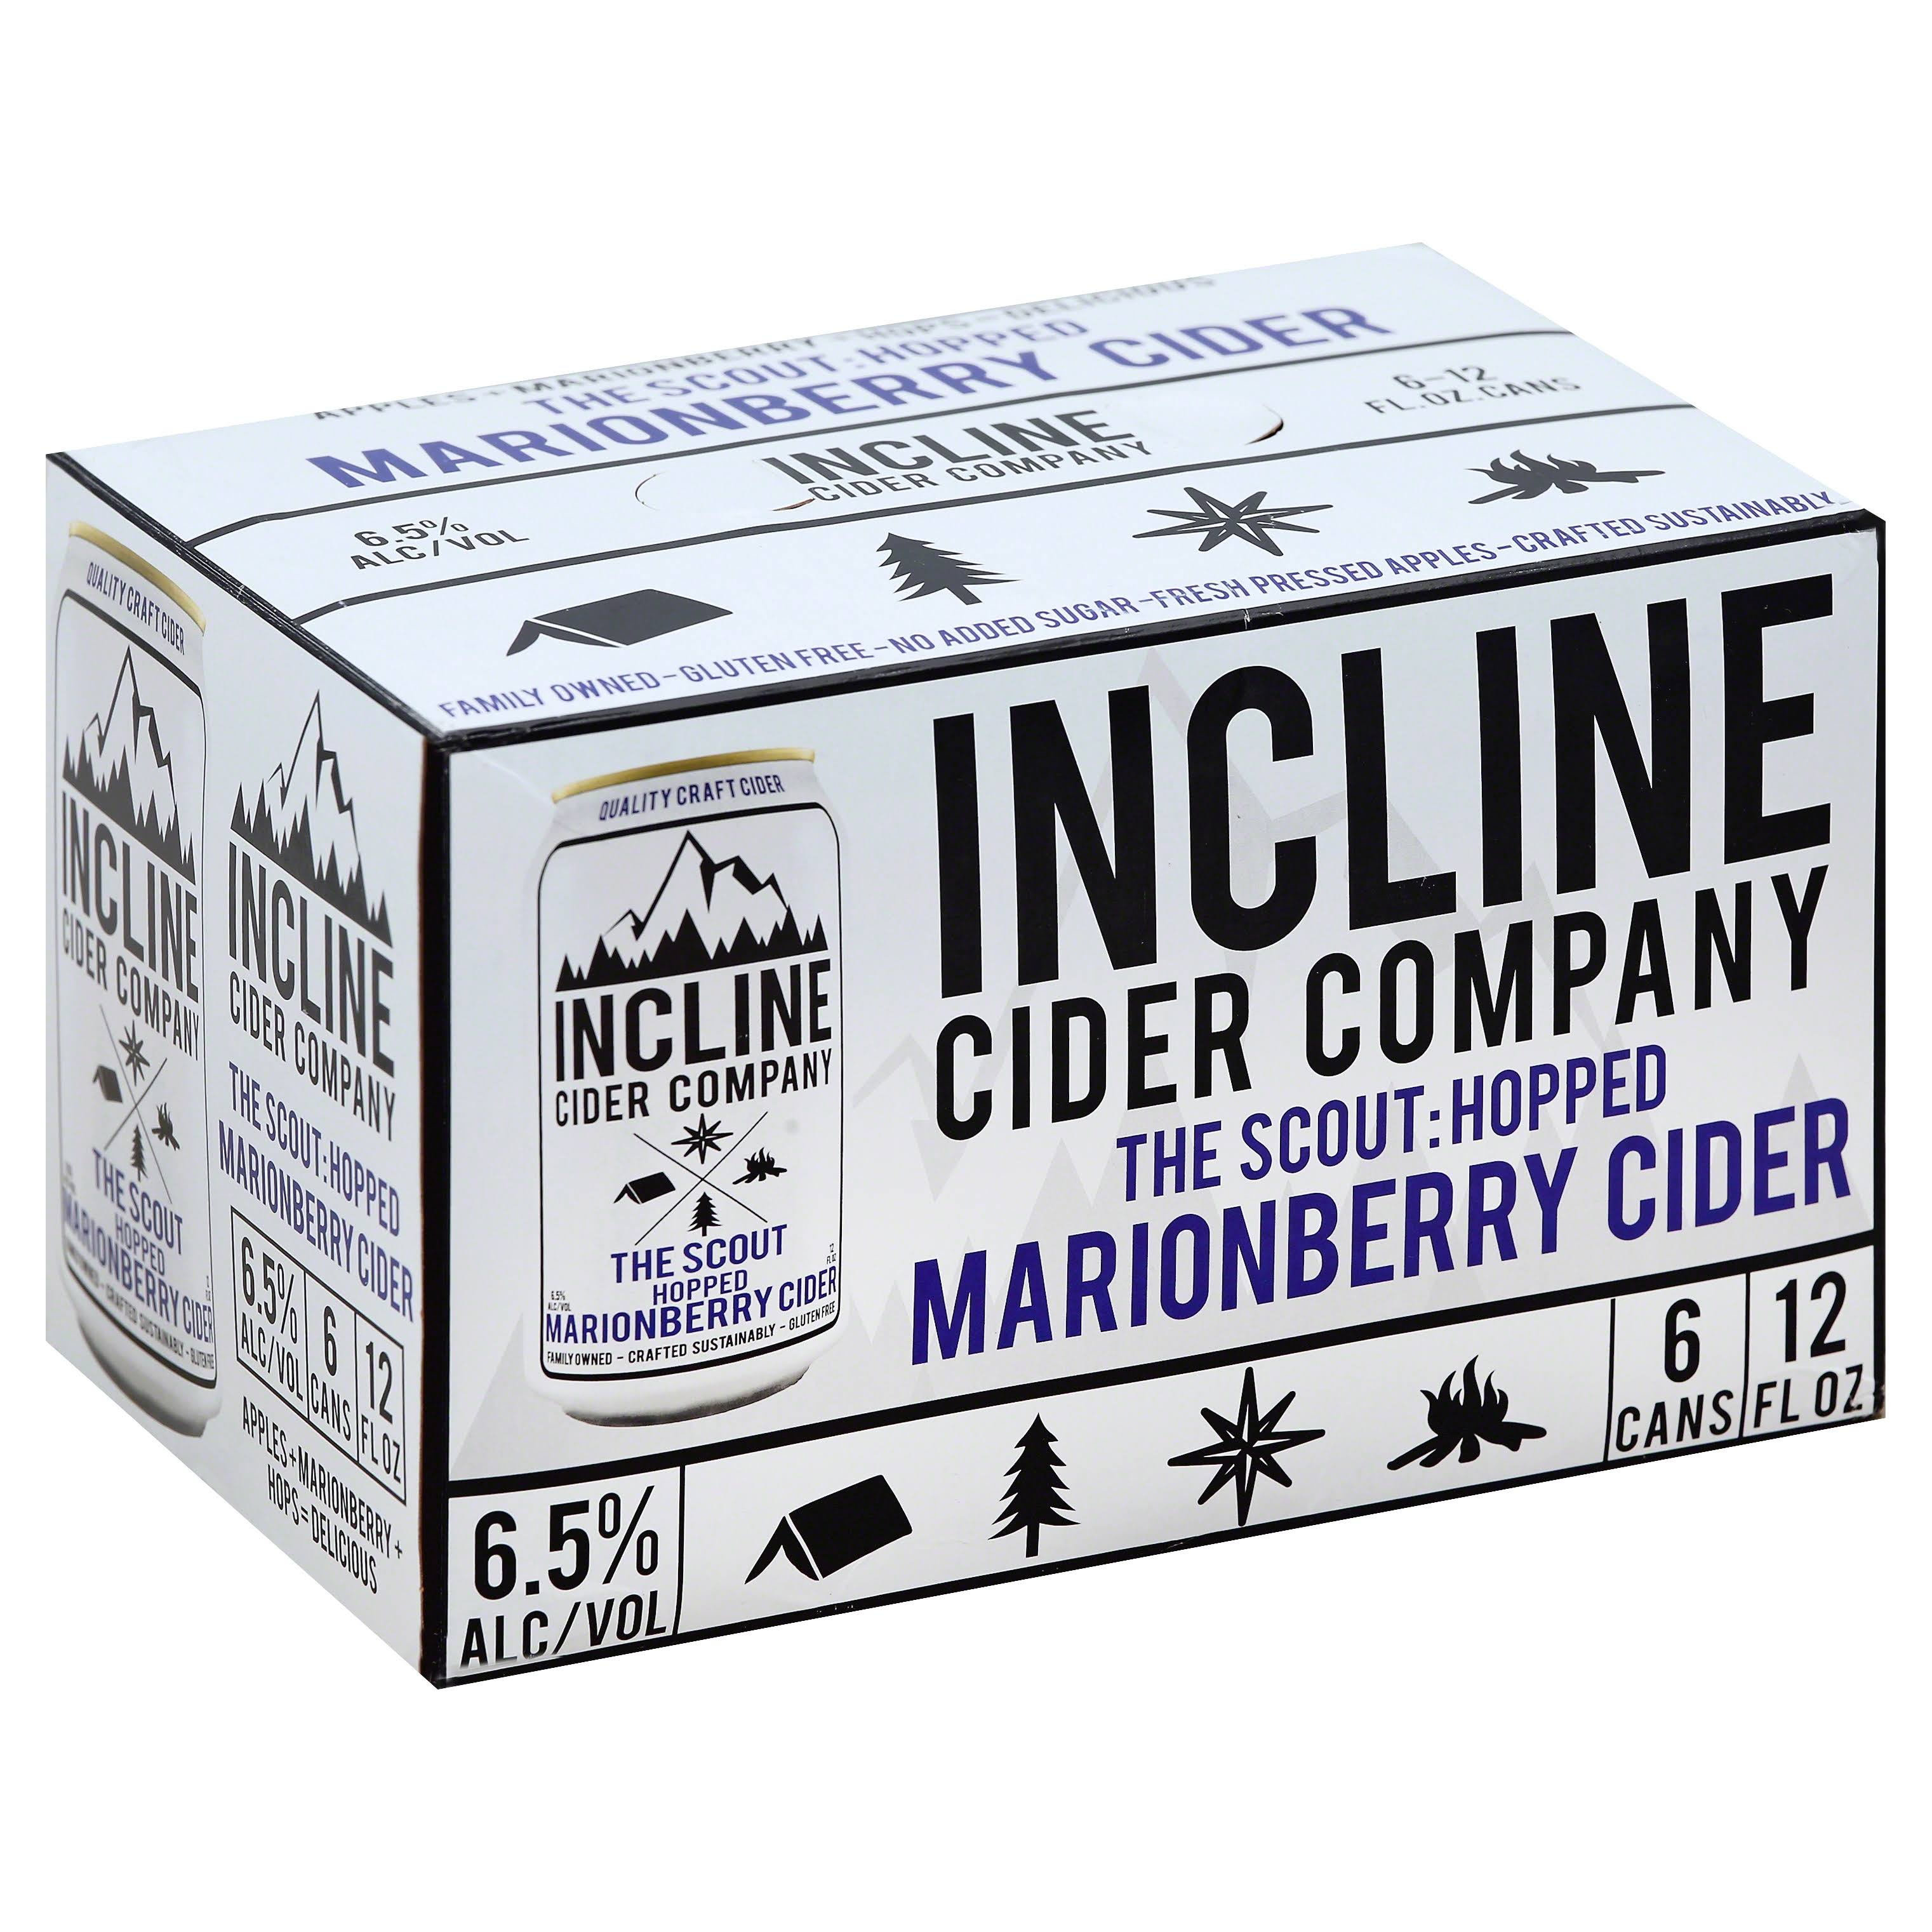 Incline Cider Cider, The Scout, Hopped Marionberry - 6 pack, 12 fl oz cans